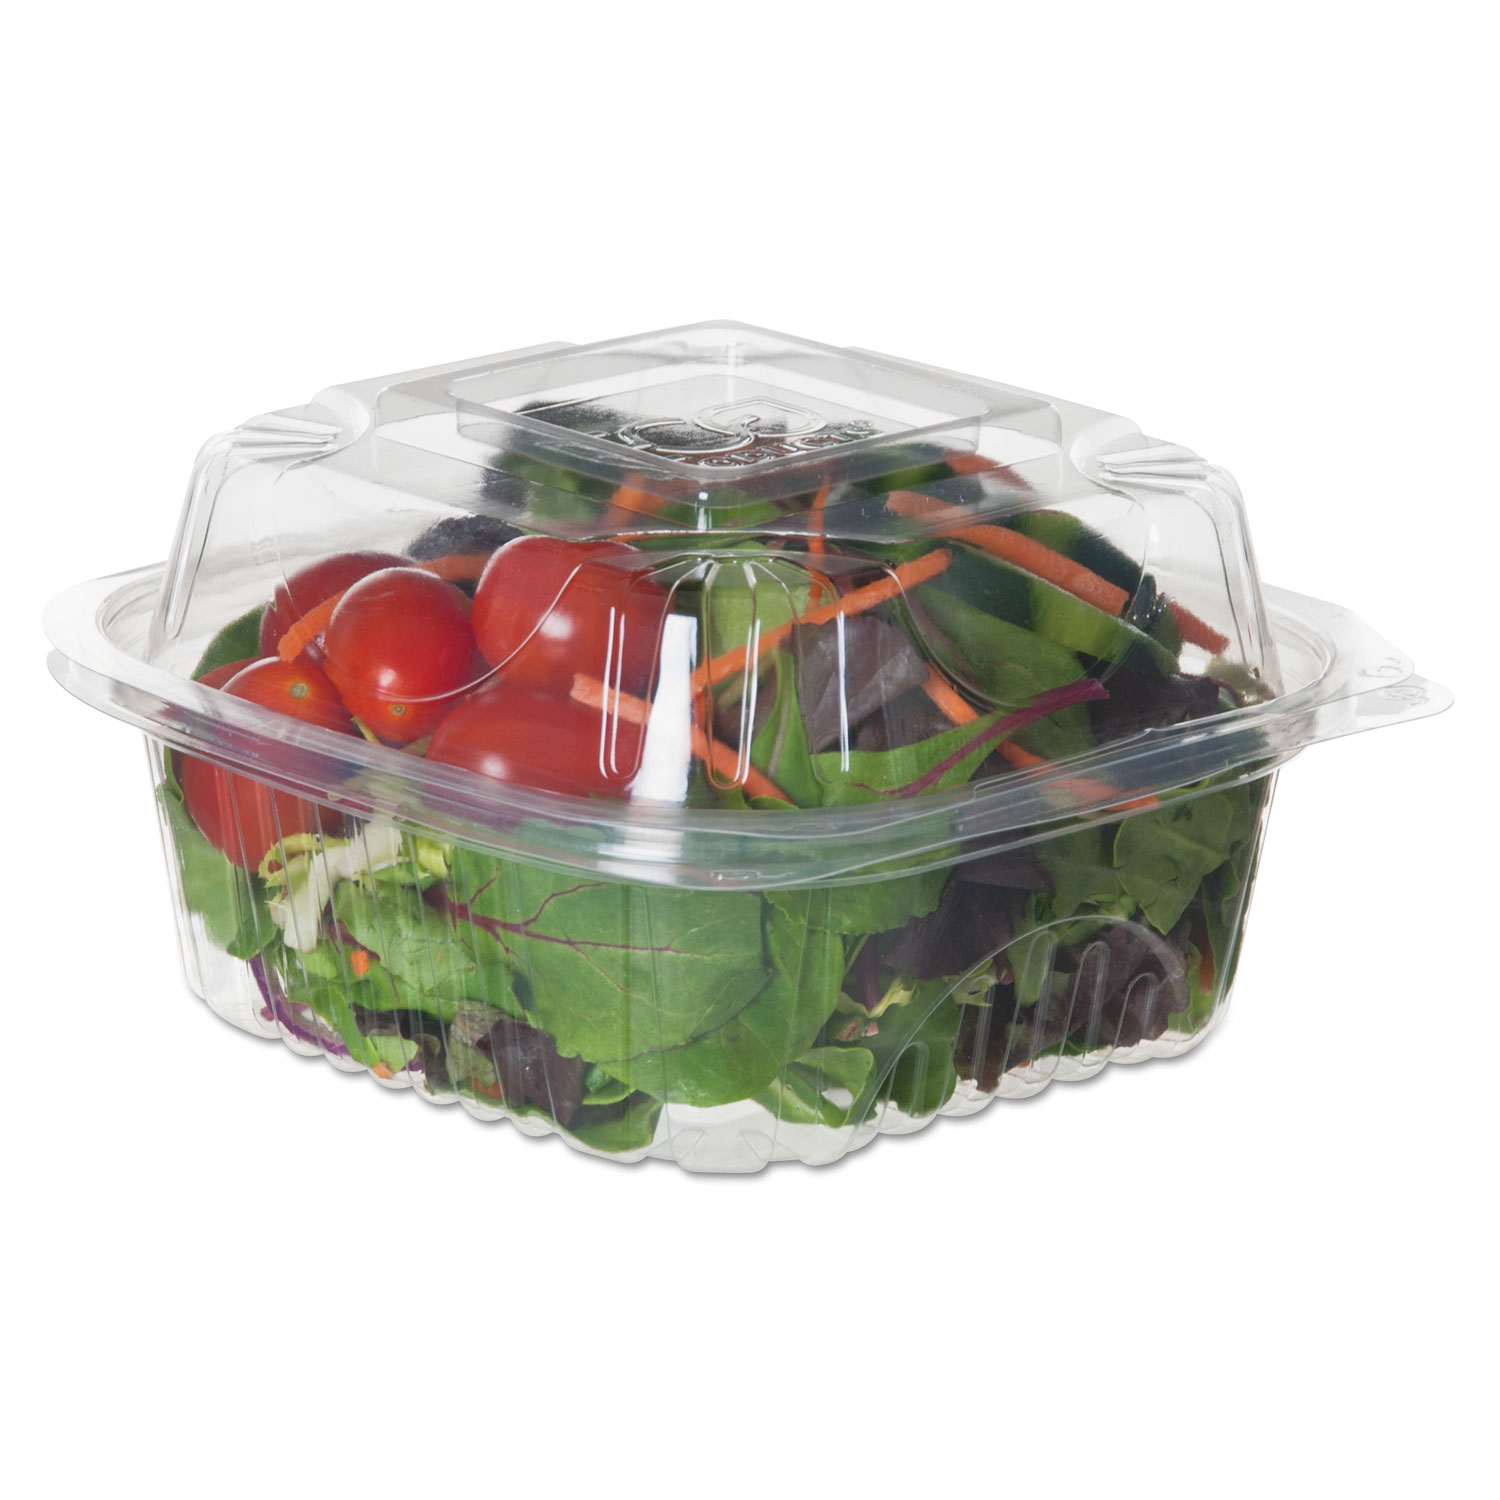 Renewable and Compostable Clear Clamshells, 6 x 6 x 3, 80/Pack, 3 Packs/Carton ECOEPLC6